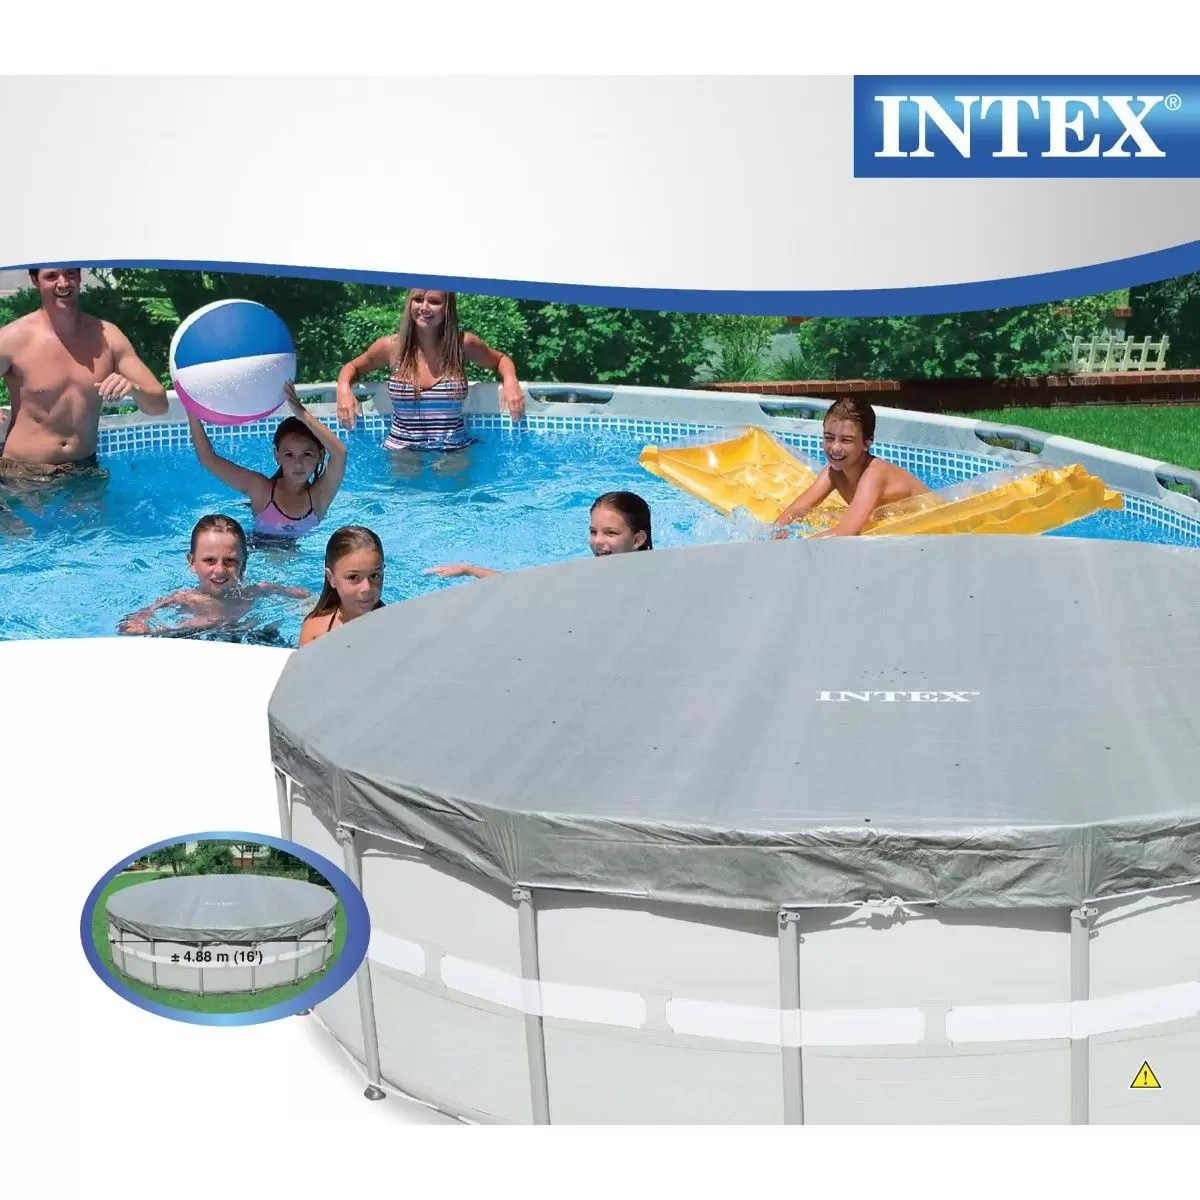 Capa De Piscina Intex Capa Piscina Intex 16 4 88 M 488 Cm 19154 19156 L 28040